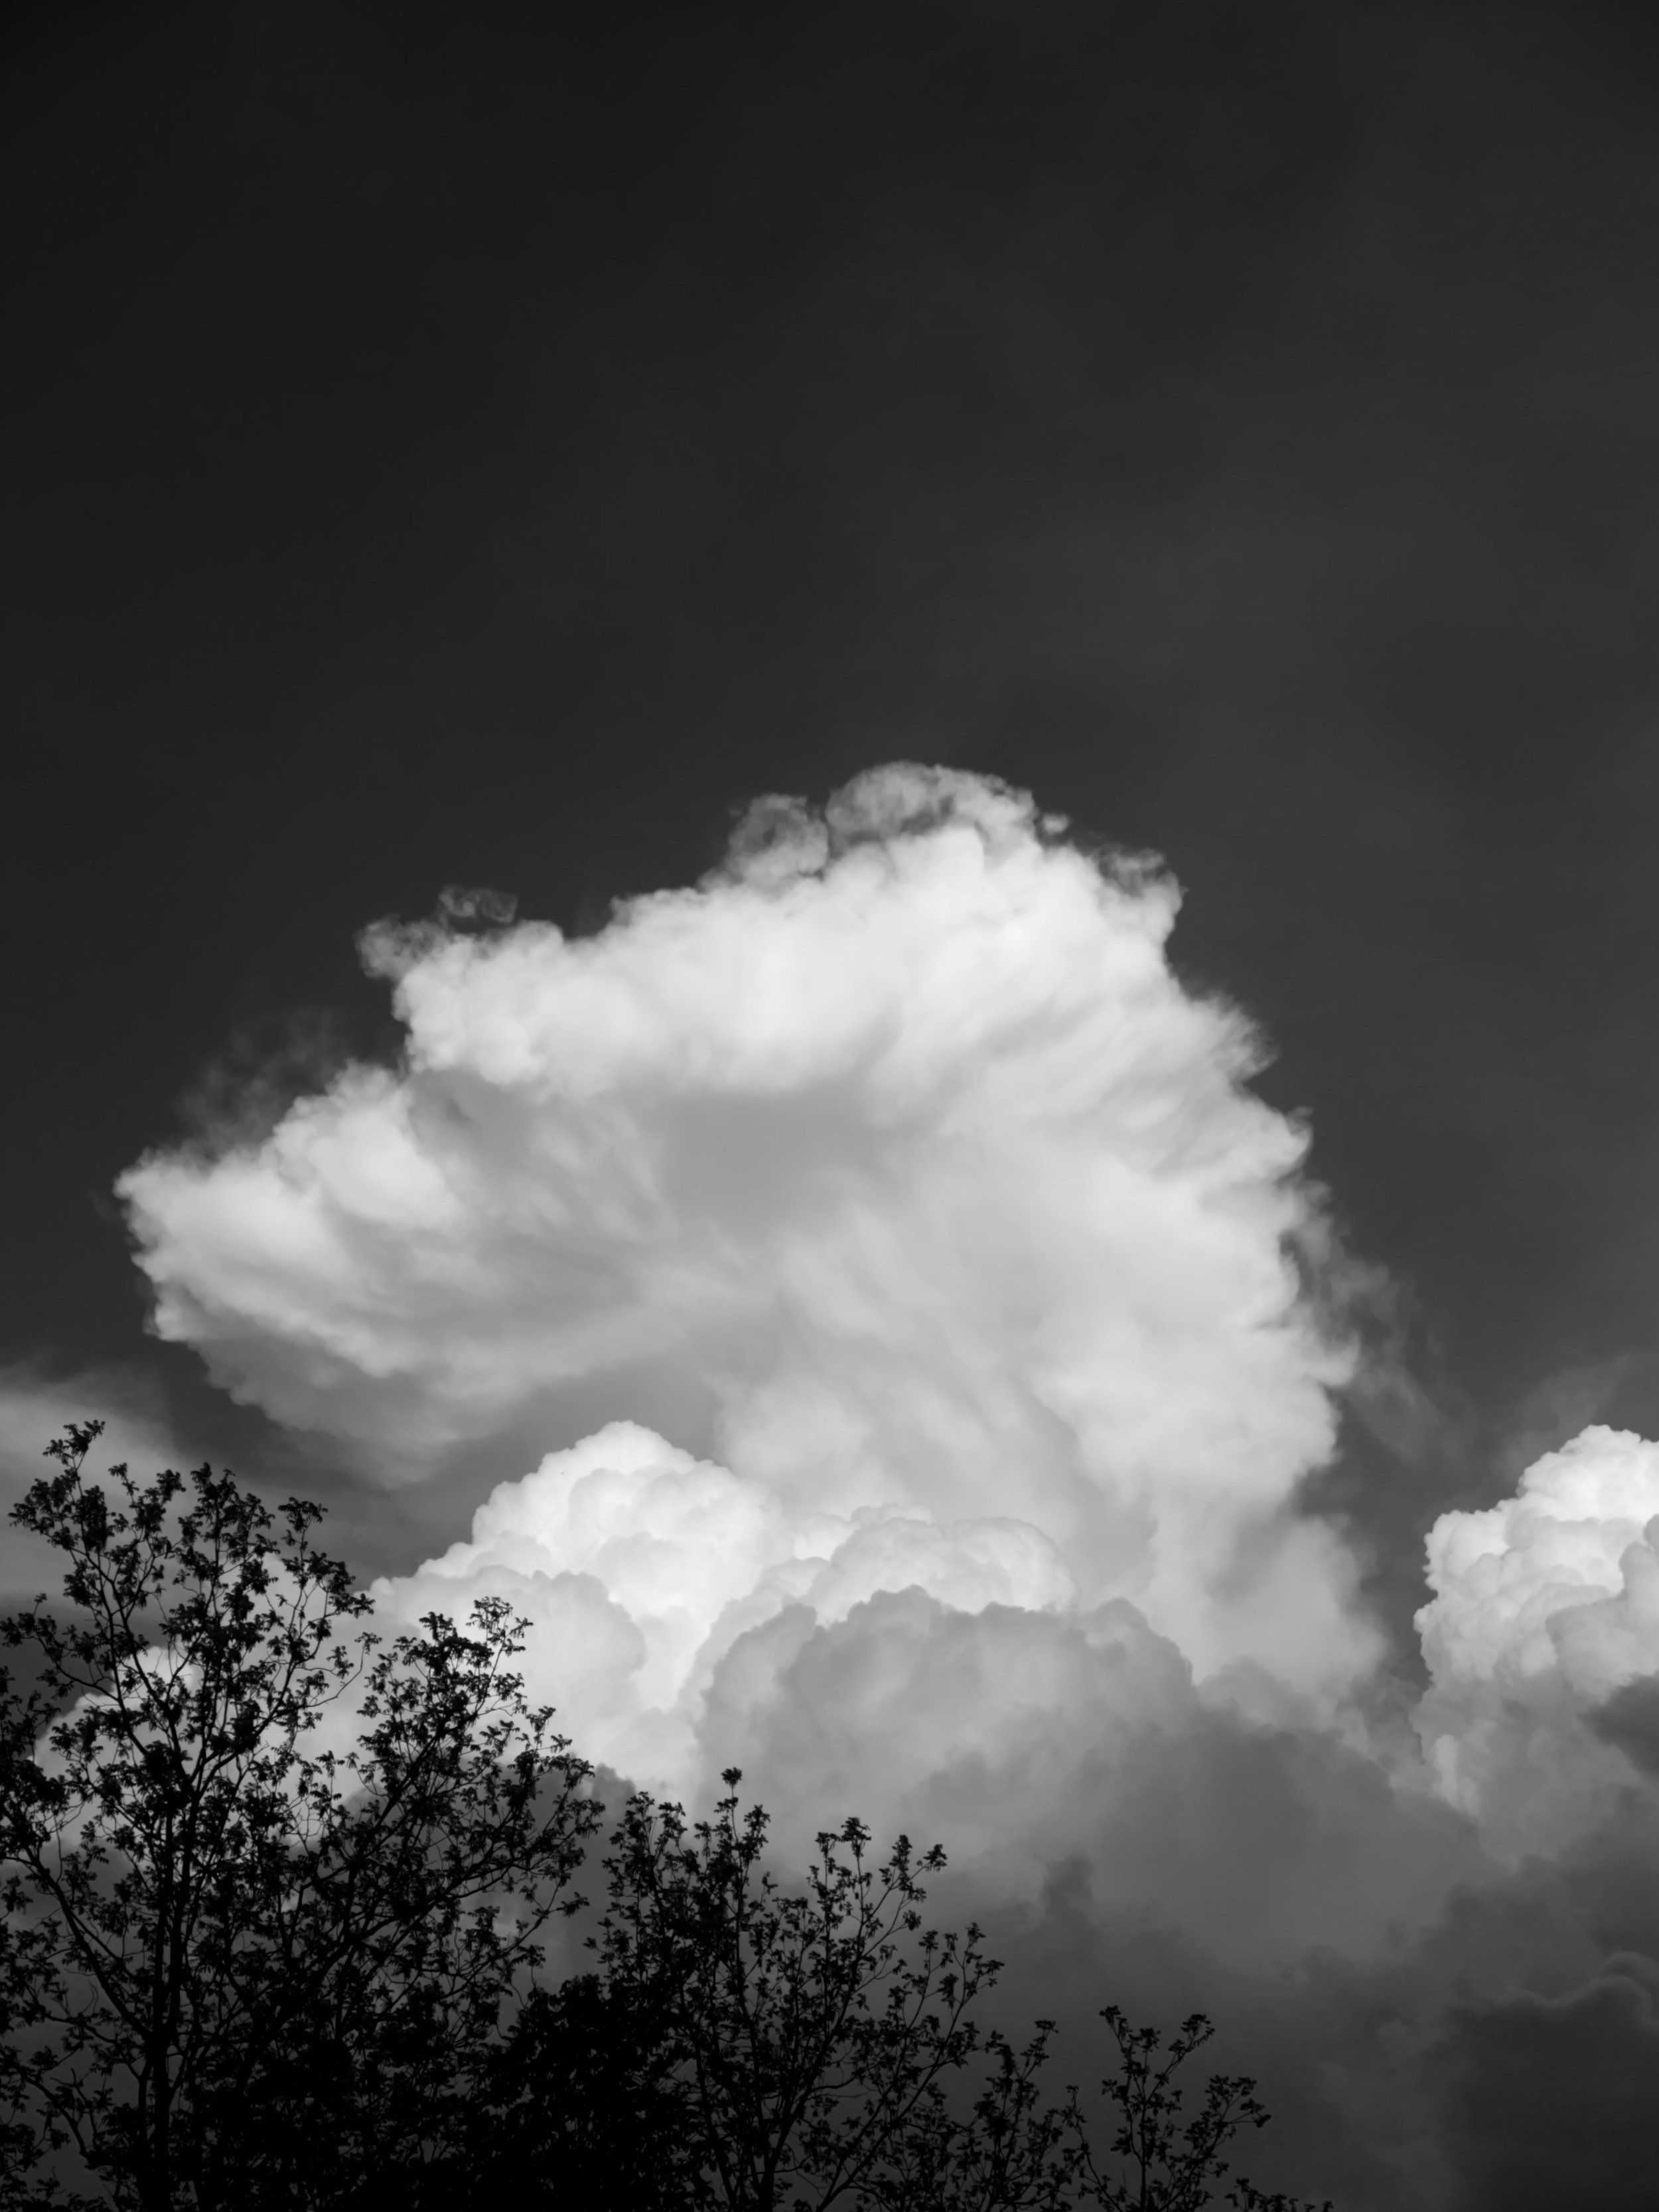 We all have spent time during our lives imagining things in the randomness of clouds. Sheep, elephants, maybe a dragon....But what happens when you see something so well formed that no imagination is necessary to witness it?